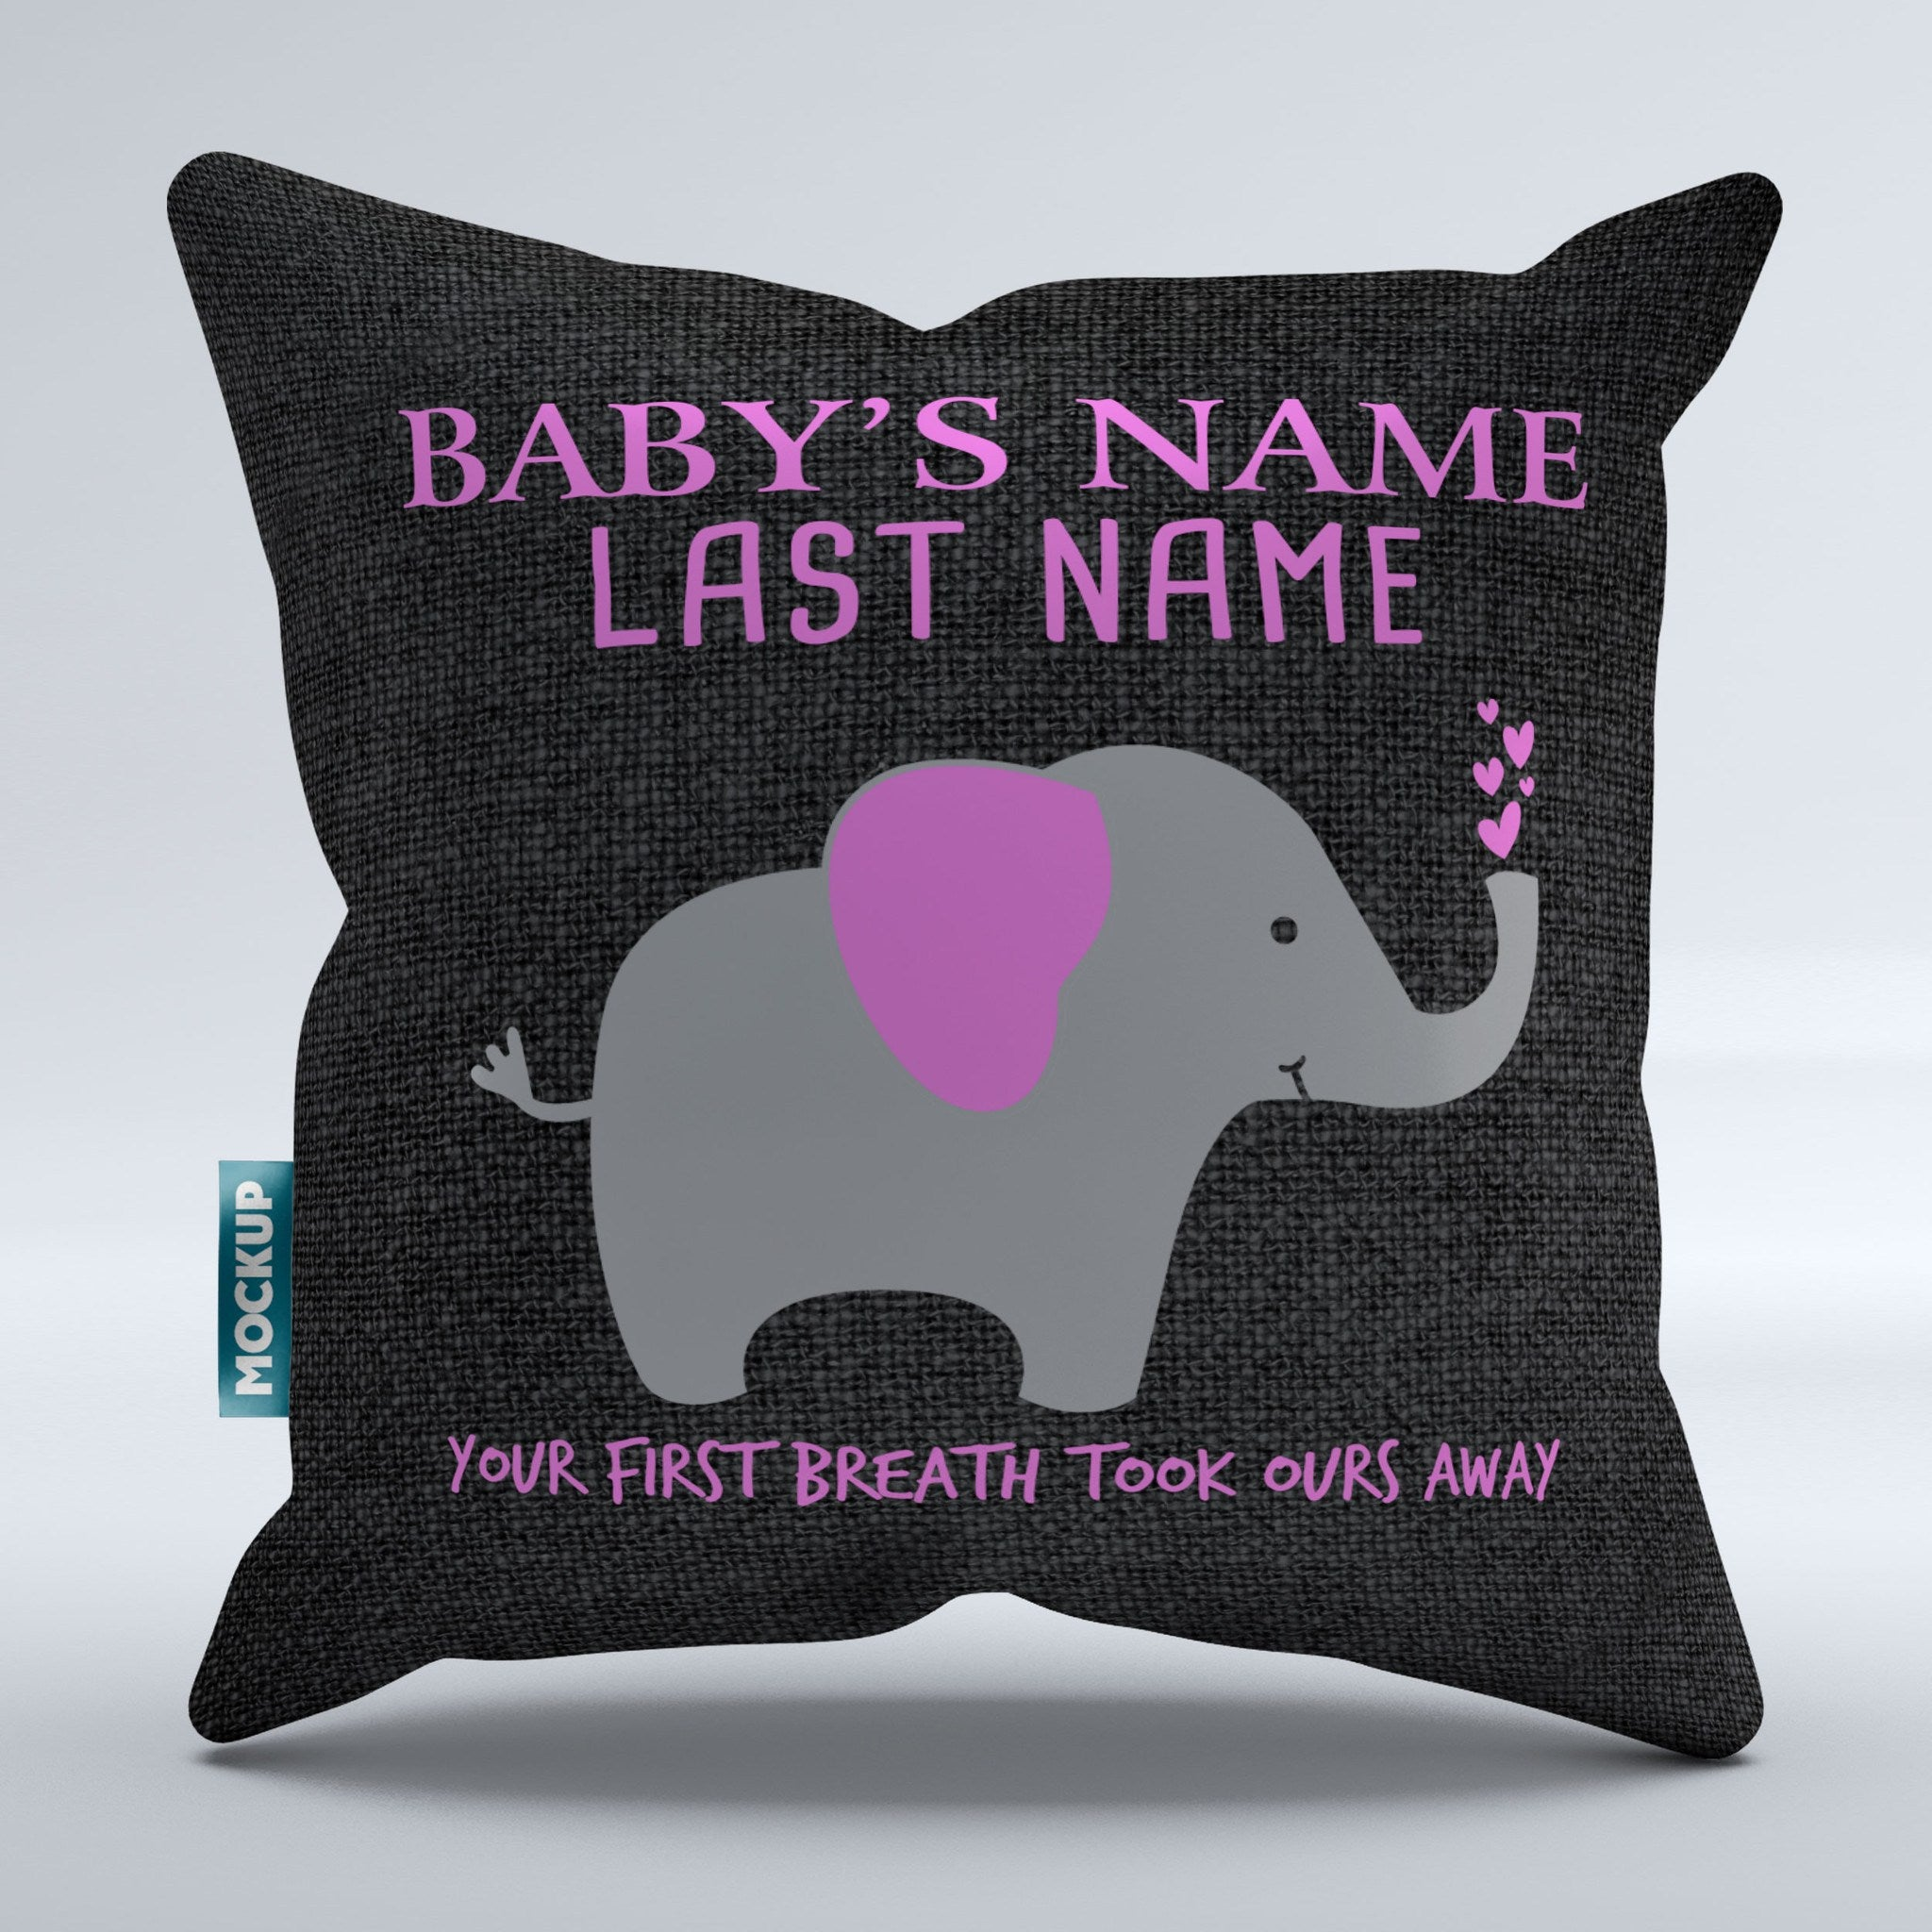 "Personalized Your First Breath Took Ours Away Pillow Cover - Throw Pillow Cover - 18"" x 18"""